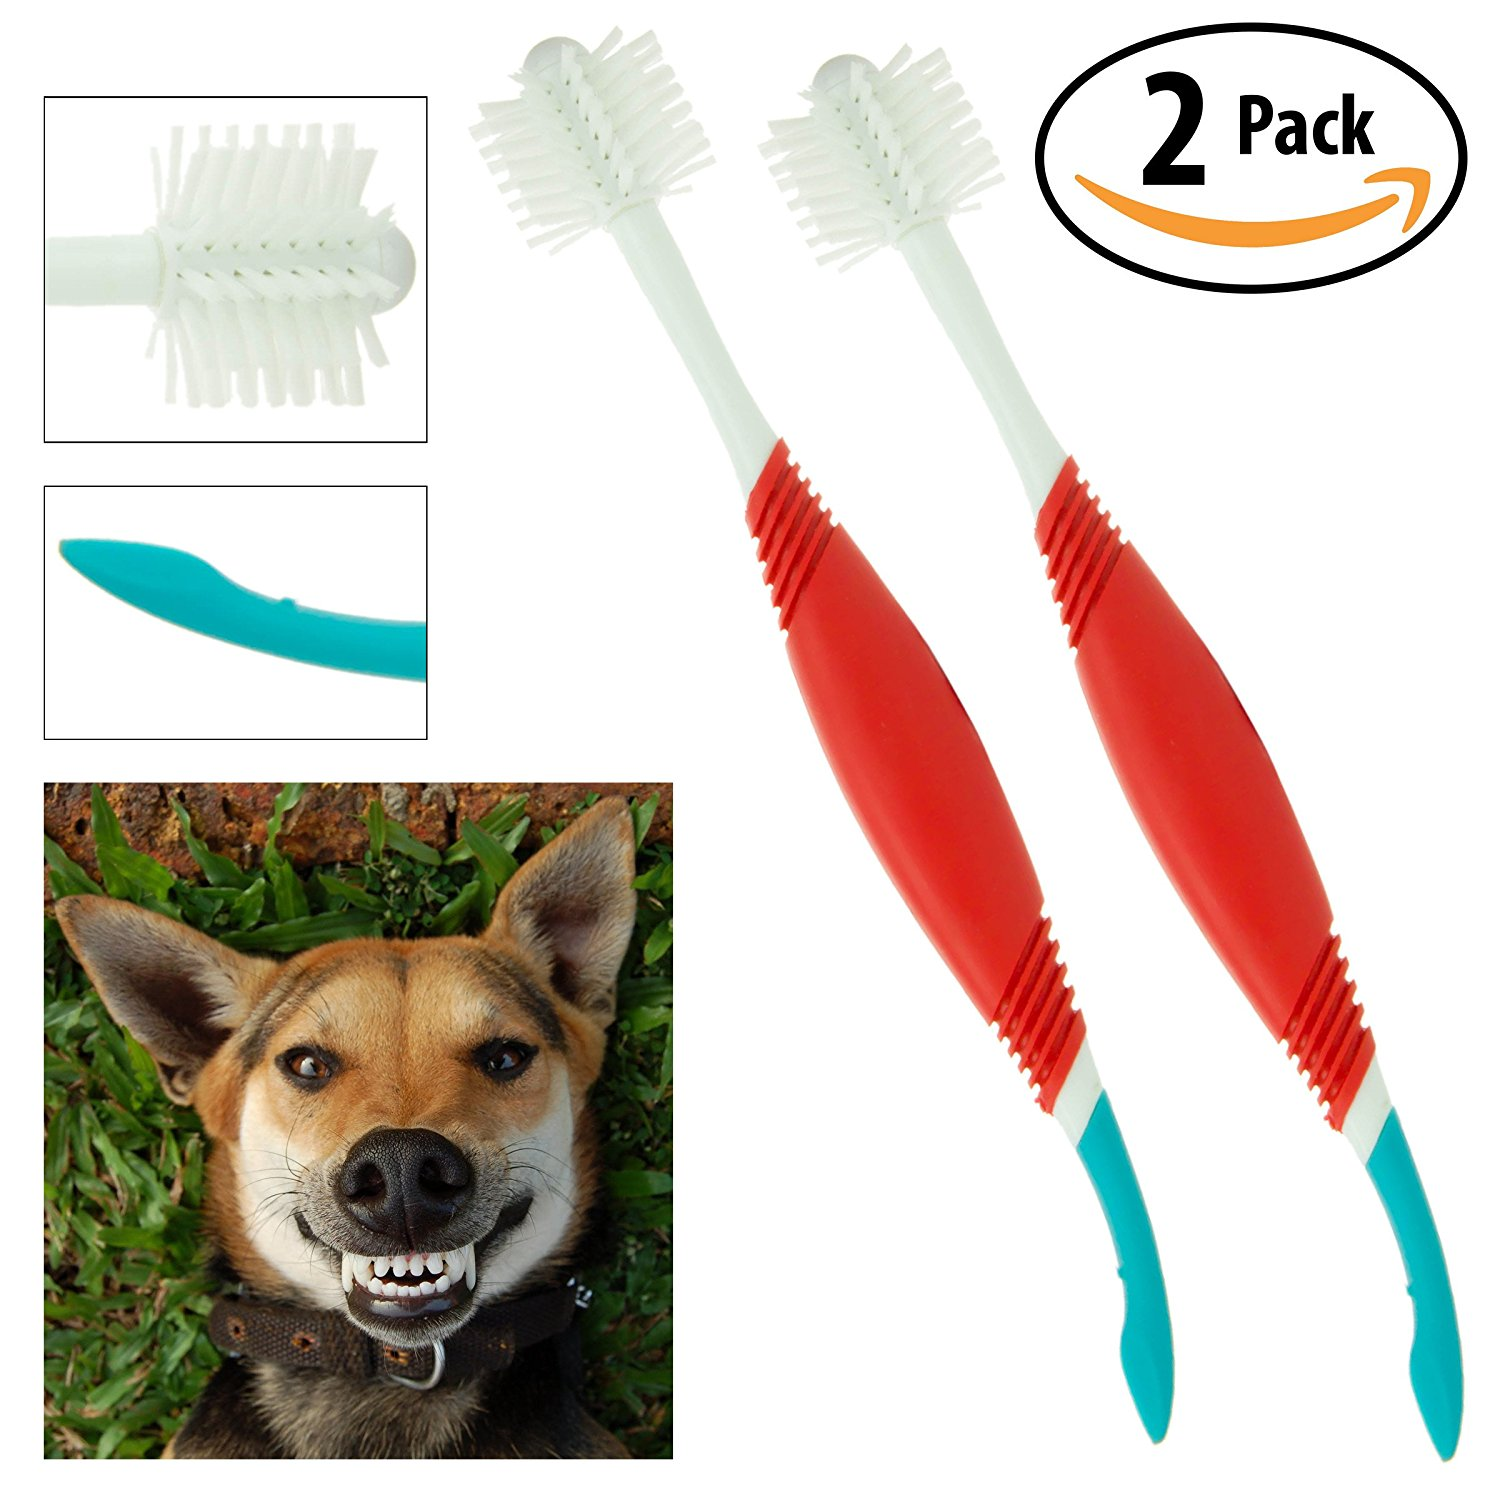 Petrodex Dog 2-in-1 Toothbrush & Plaque Scraper